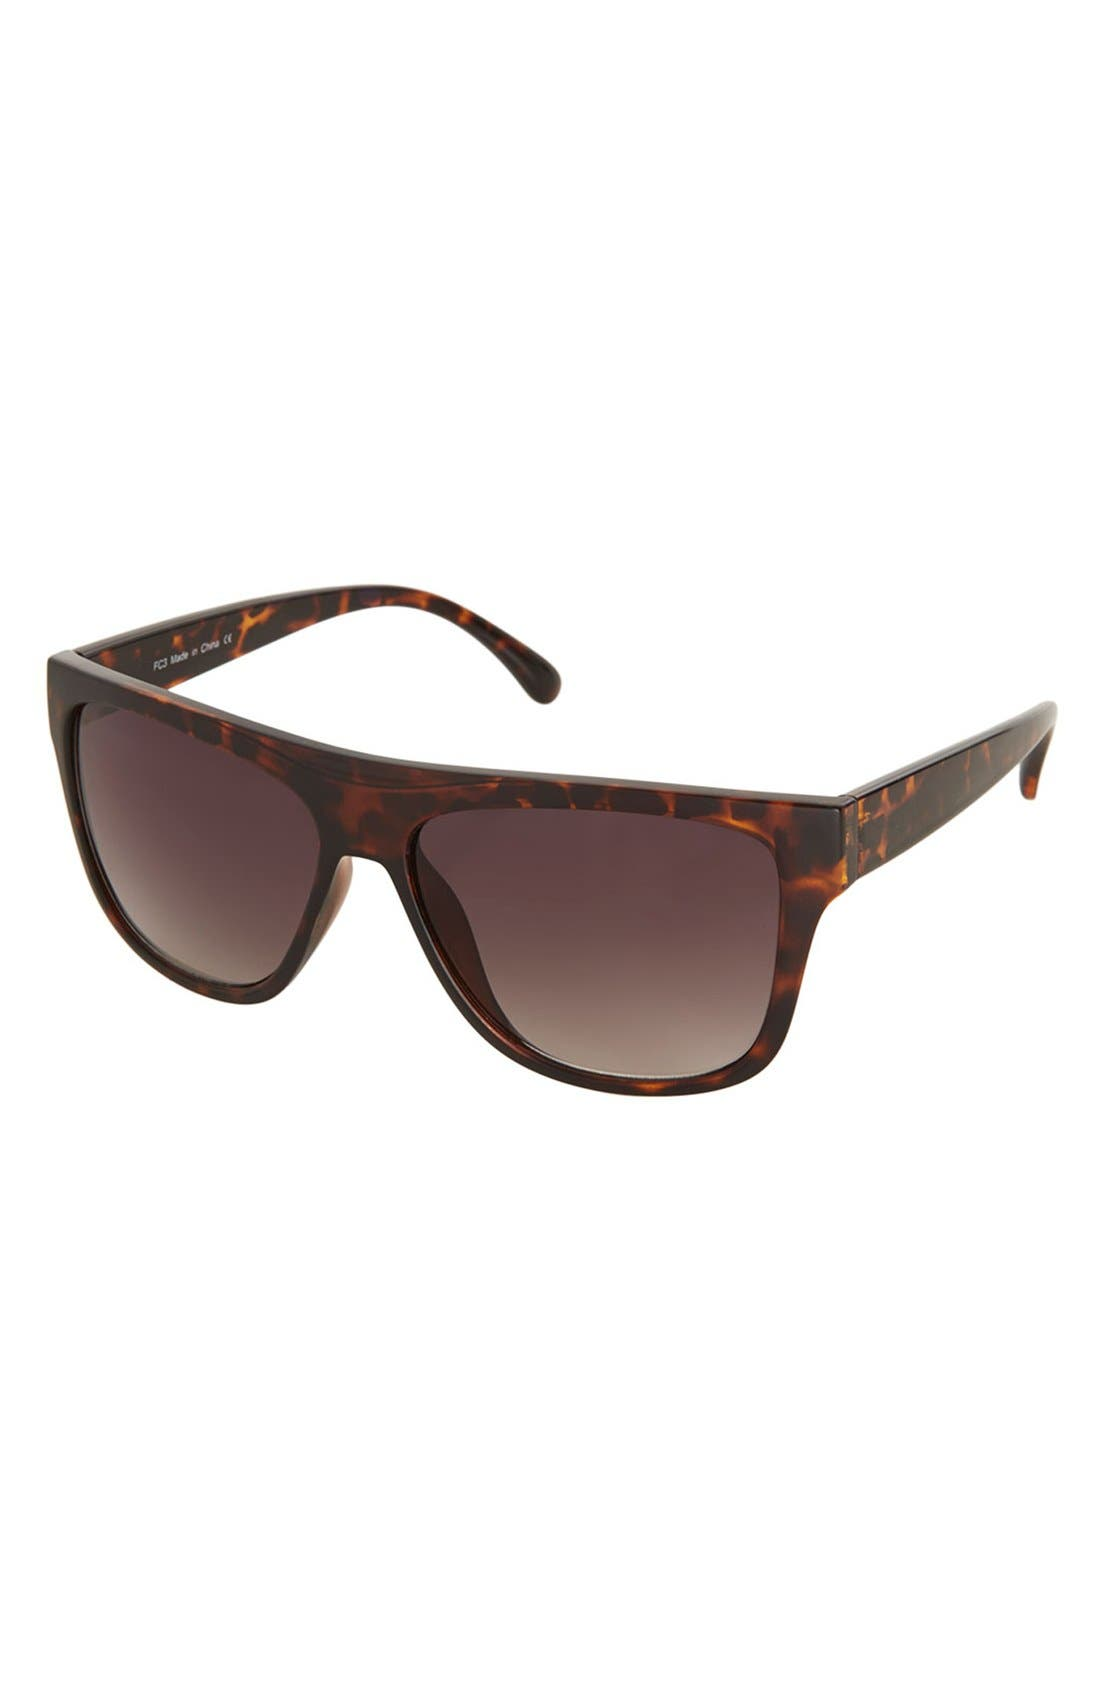 Alternate Image 1 Selected - Topshop 'The Collection Starring Kate Bosworth' Sunglasses